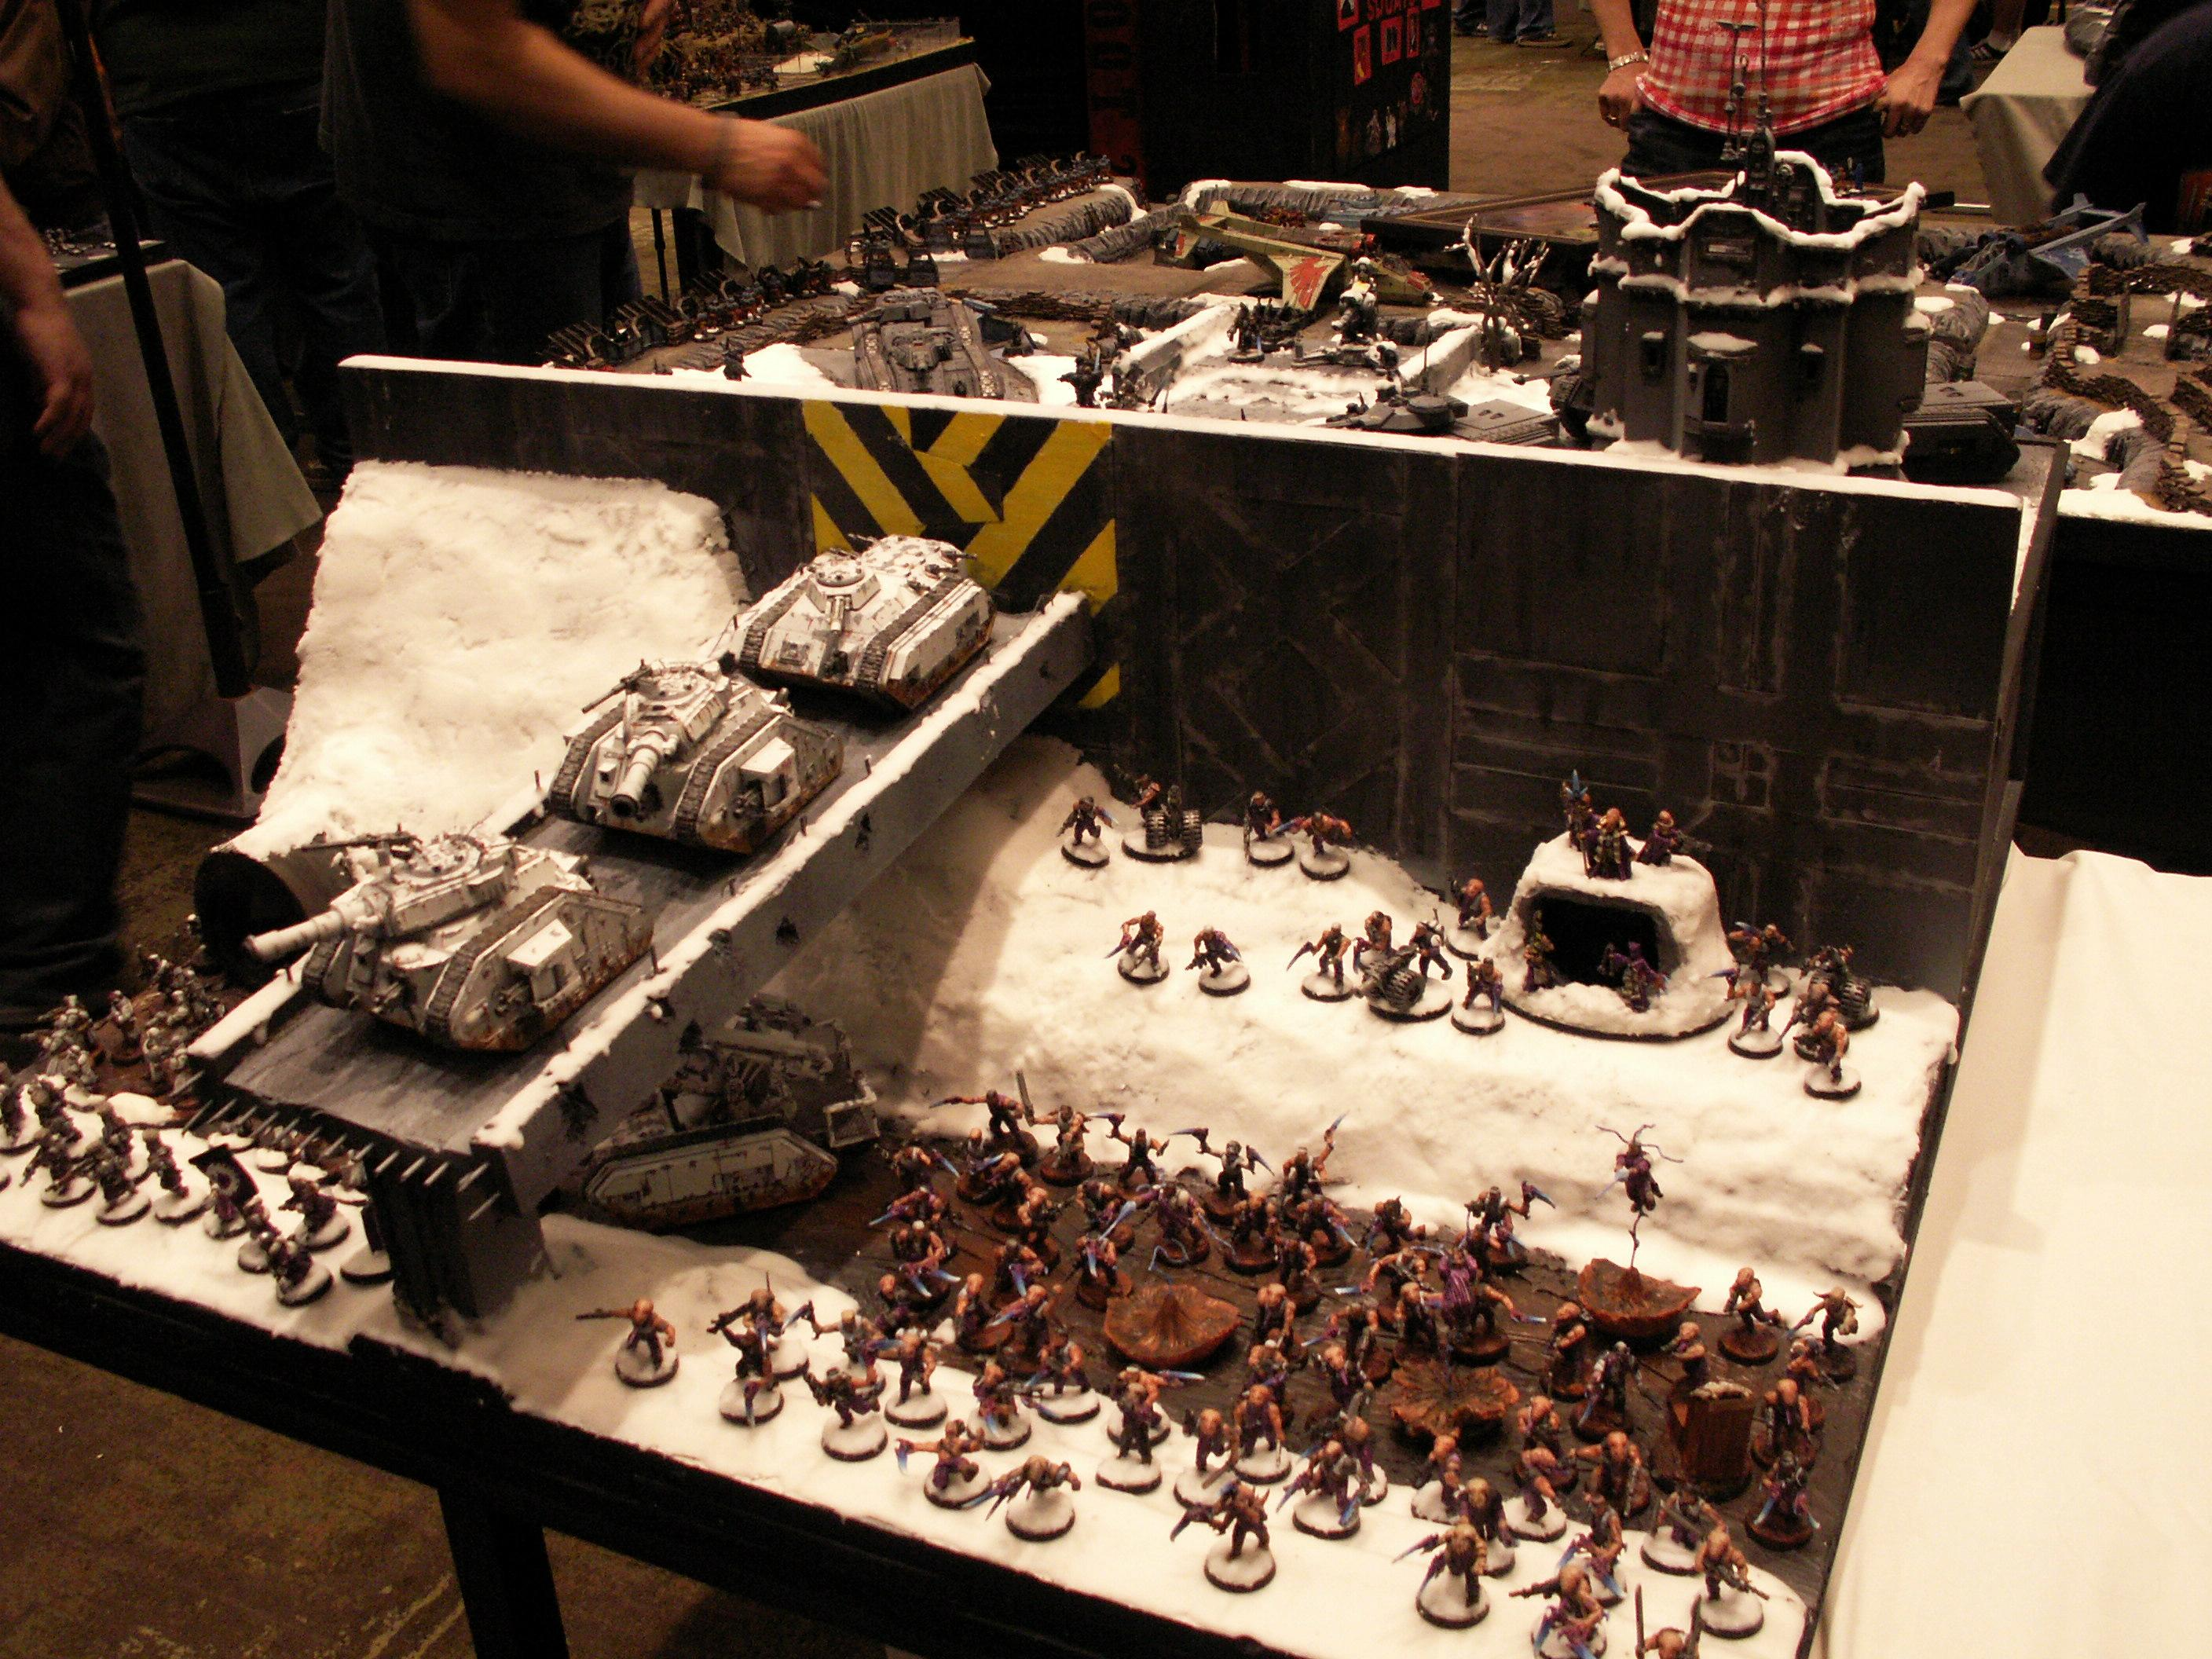 Adepticon, Adepticon 2010, Awesome, Battle, Bridge, Imperial Guard, Leman Russ, Painted, Terrain, Volyan Liberation Front, Wall, Warhammer 40,000